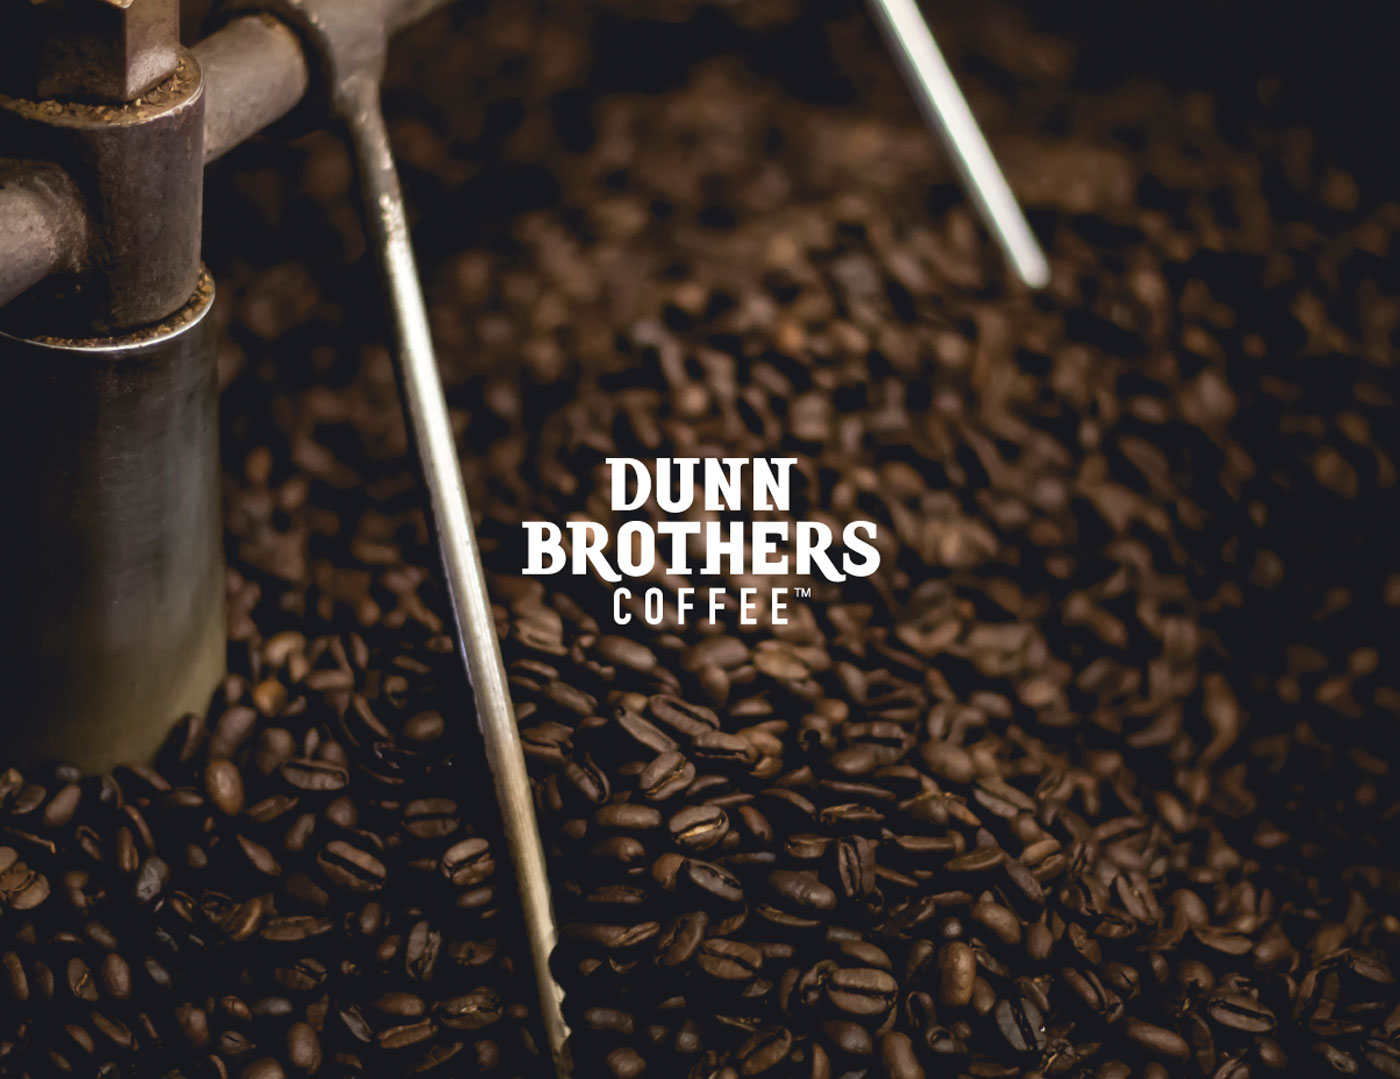 Dunn Brothers logo over roasted coffee beans